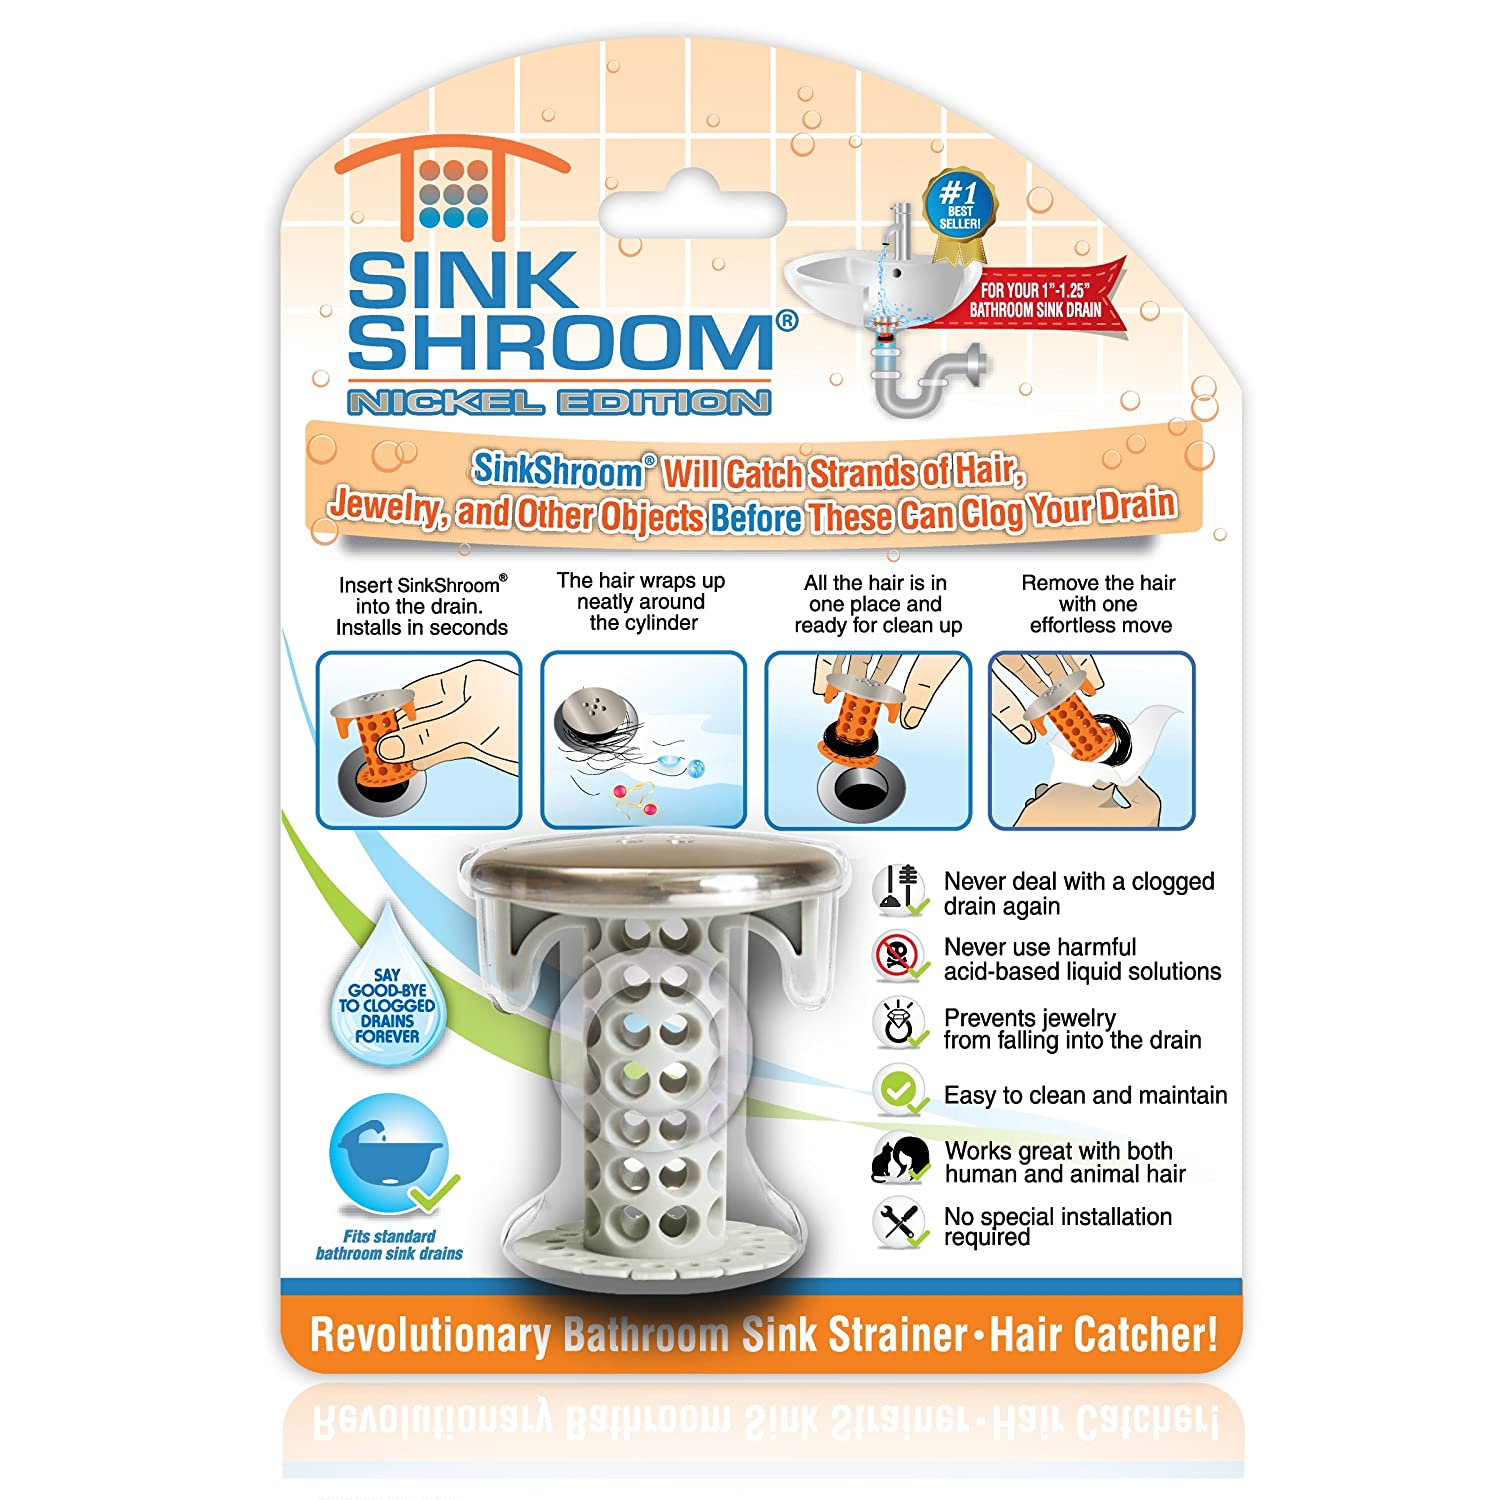 SinkShroom Nickel Edition Revolutionary Bathroom Sink Drain Protector Hair Catcher, Strainer, Snare